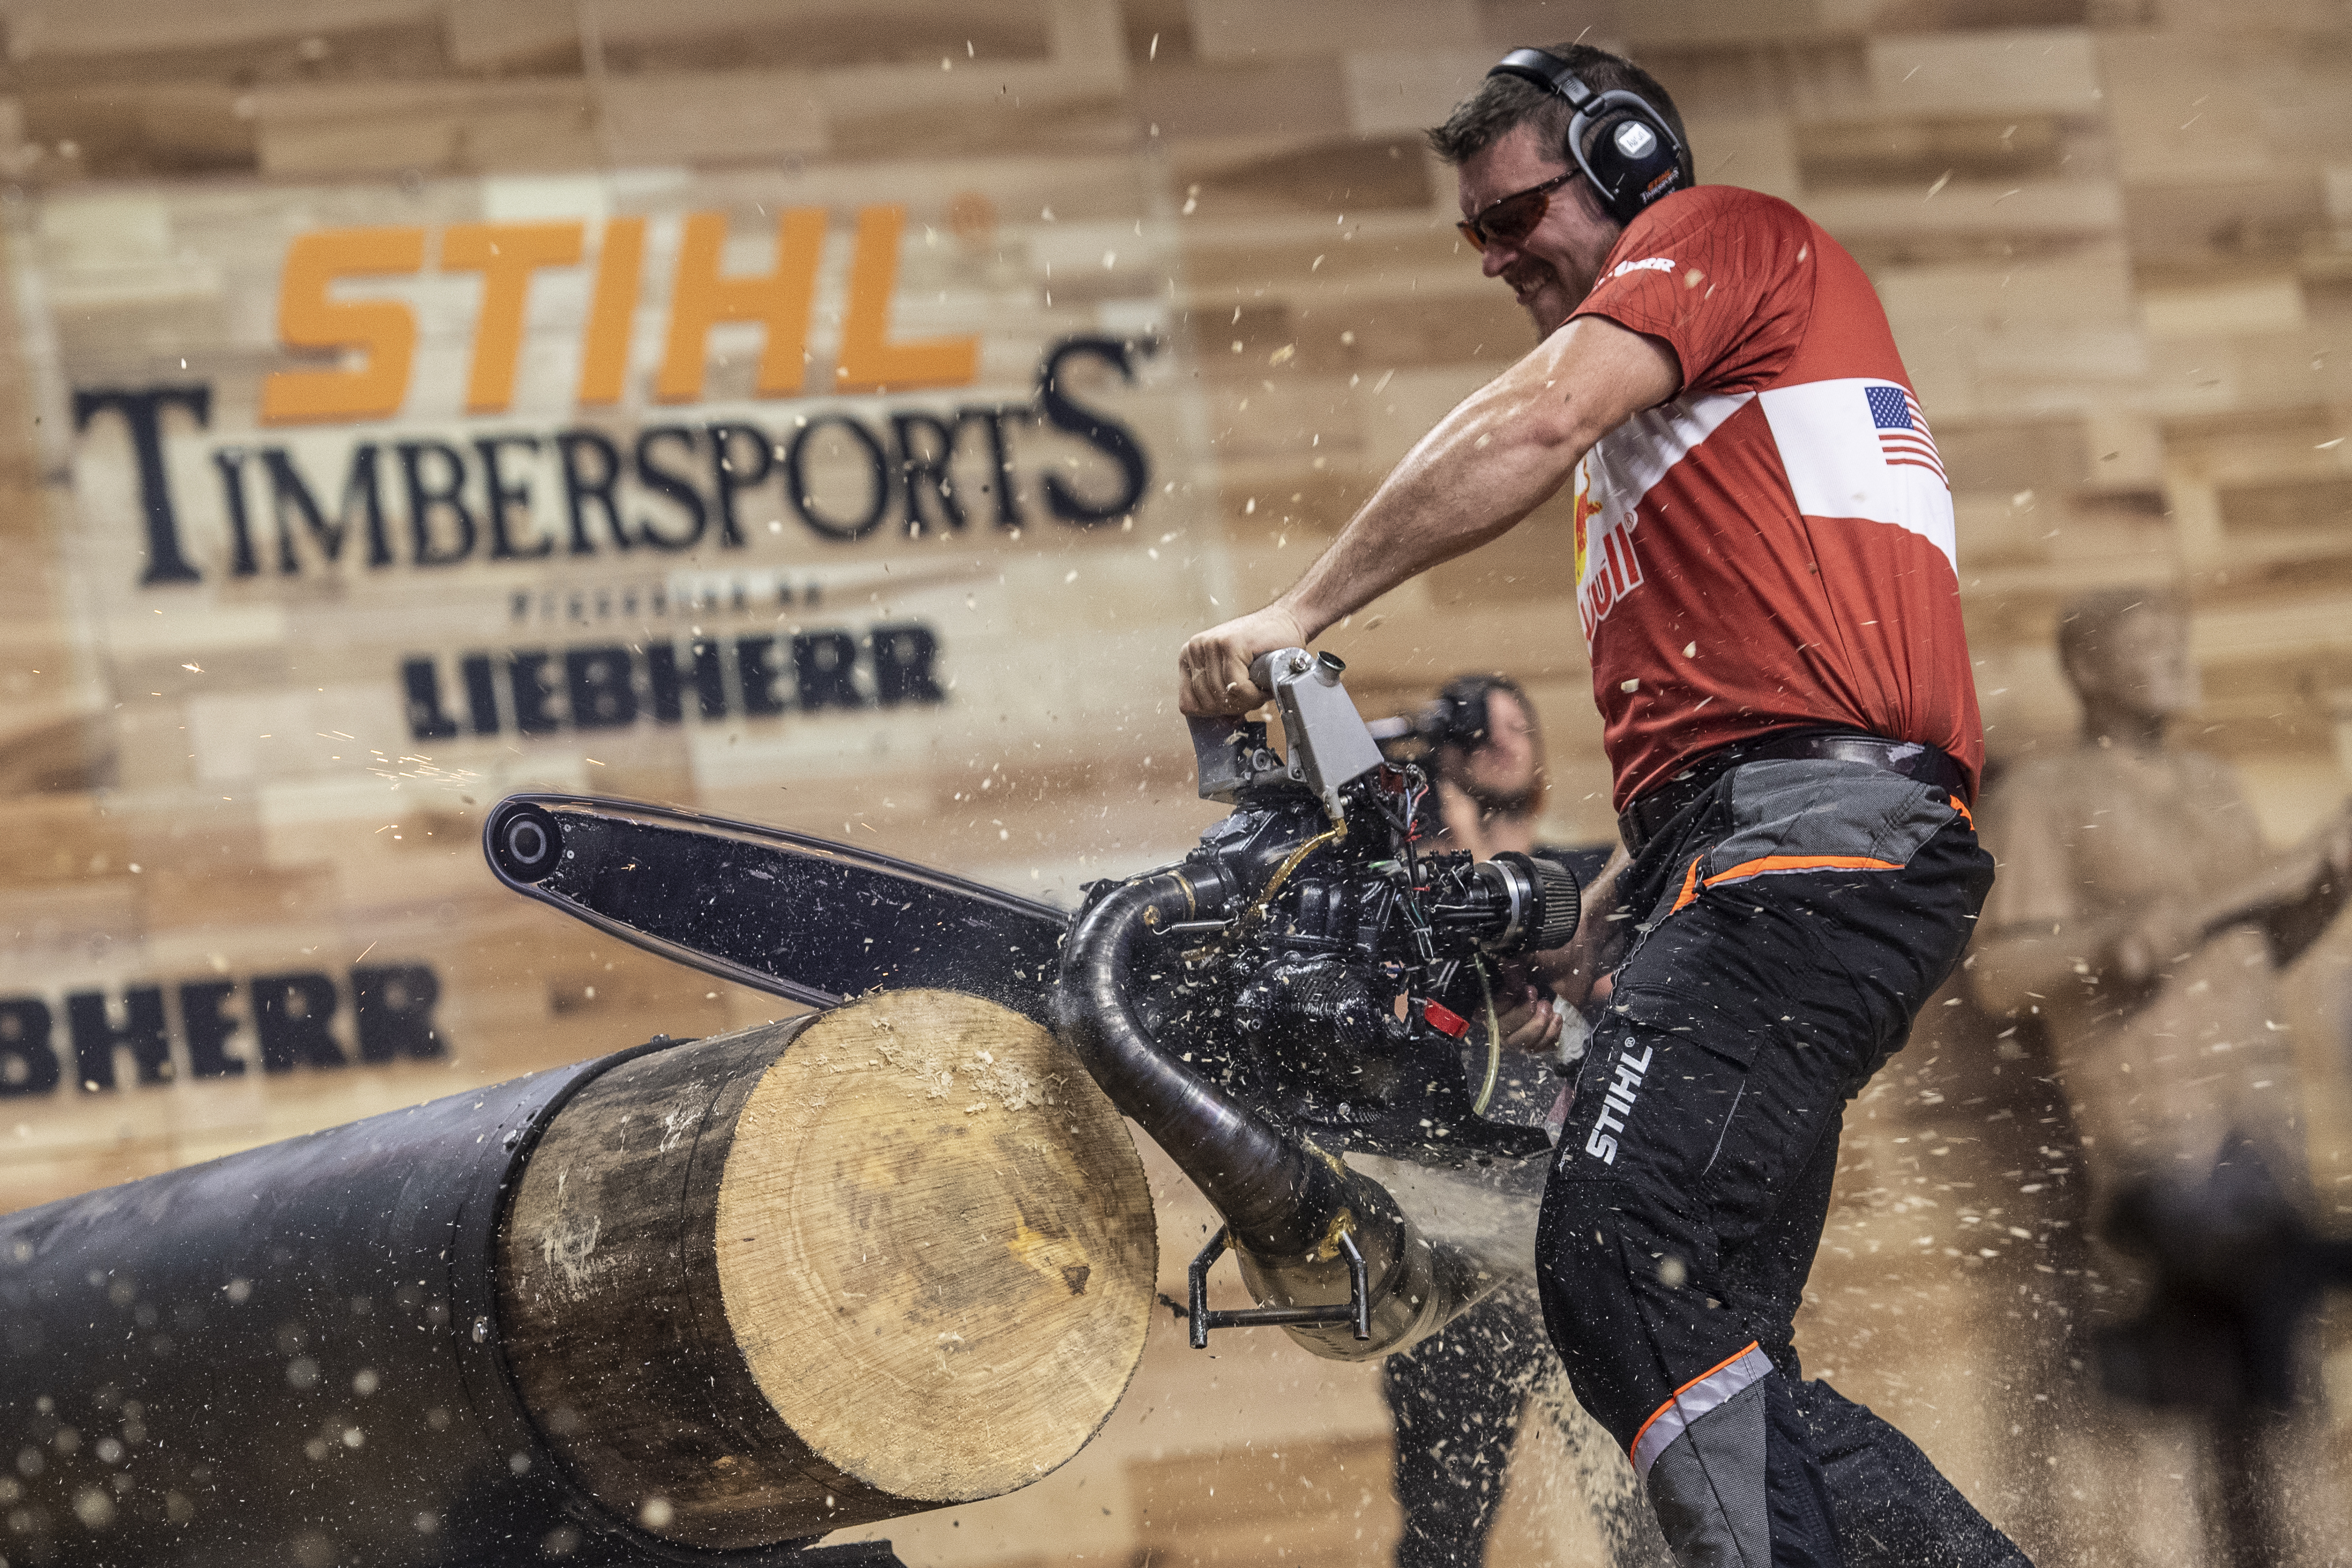 Disziplin Hot Saw TIMBERSPORTS® Event